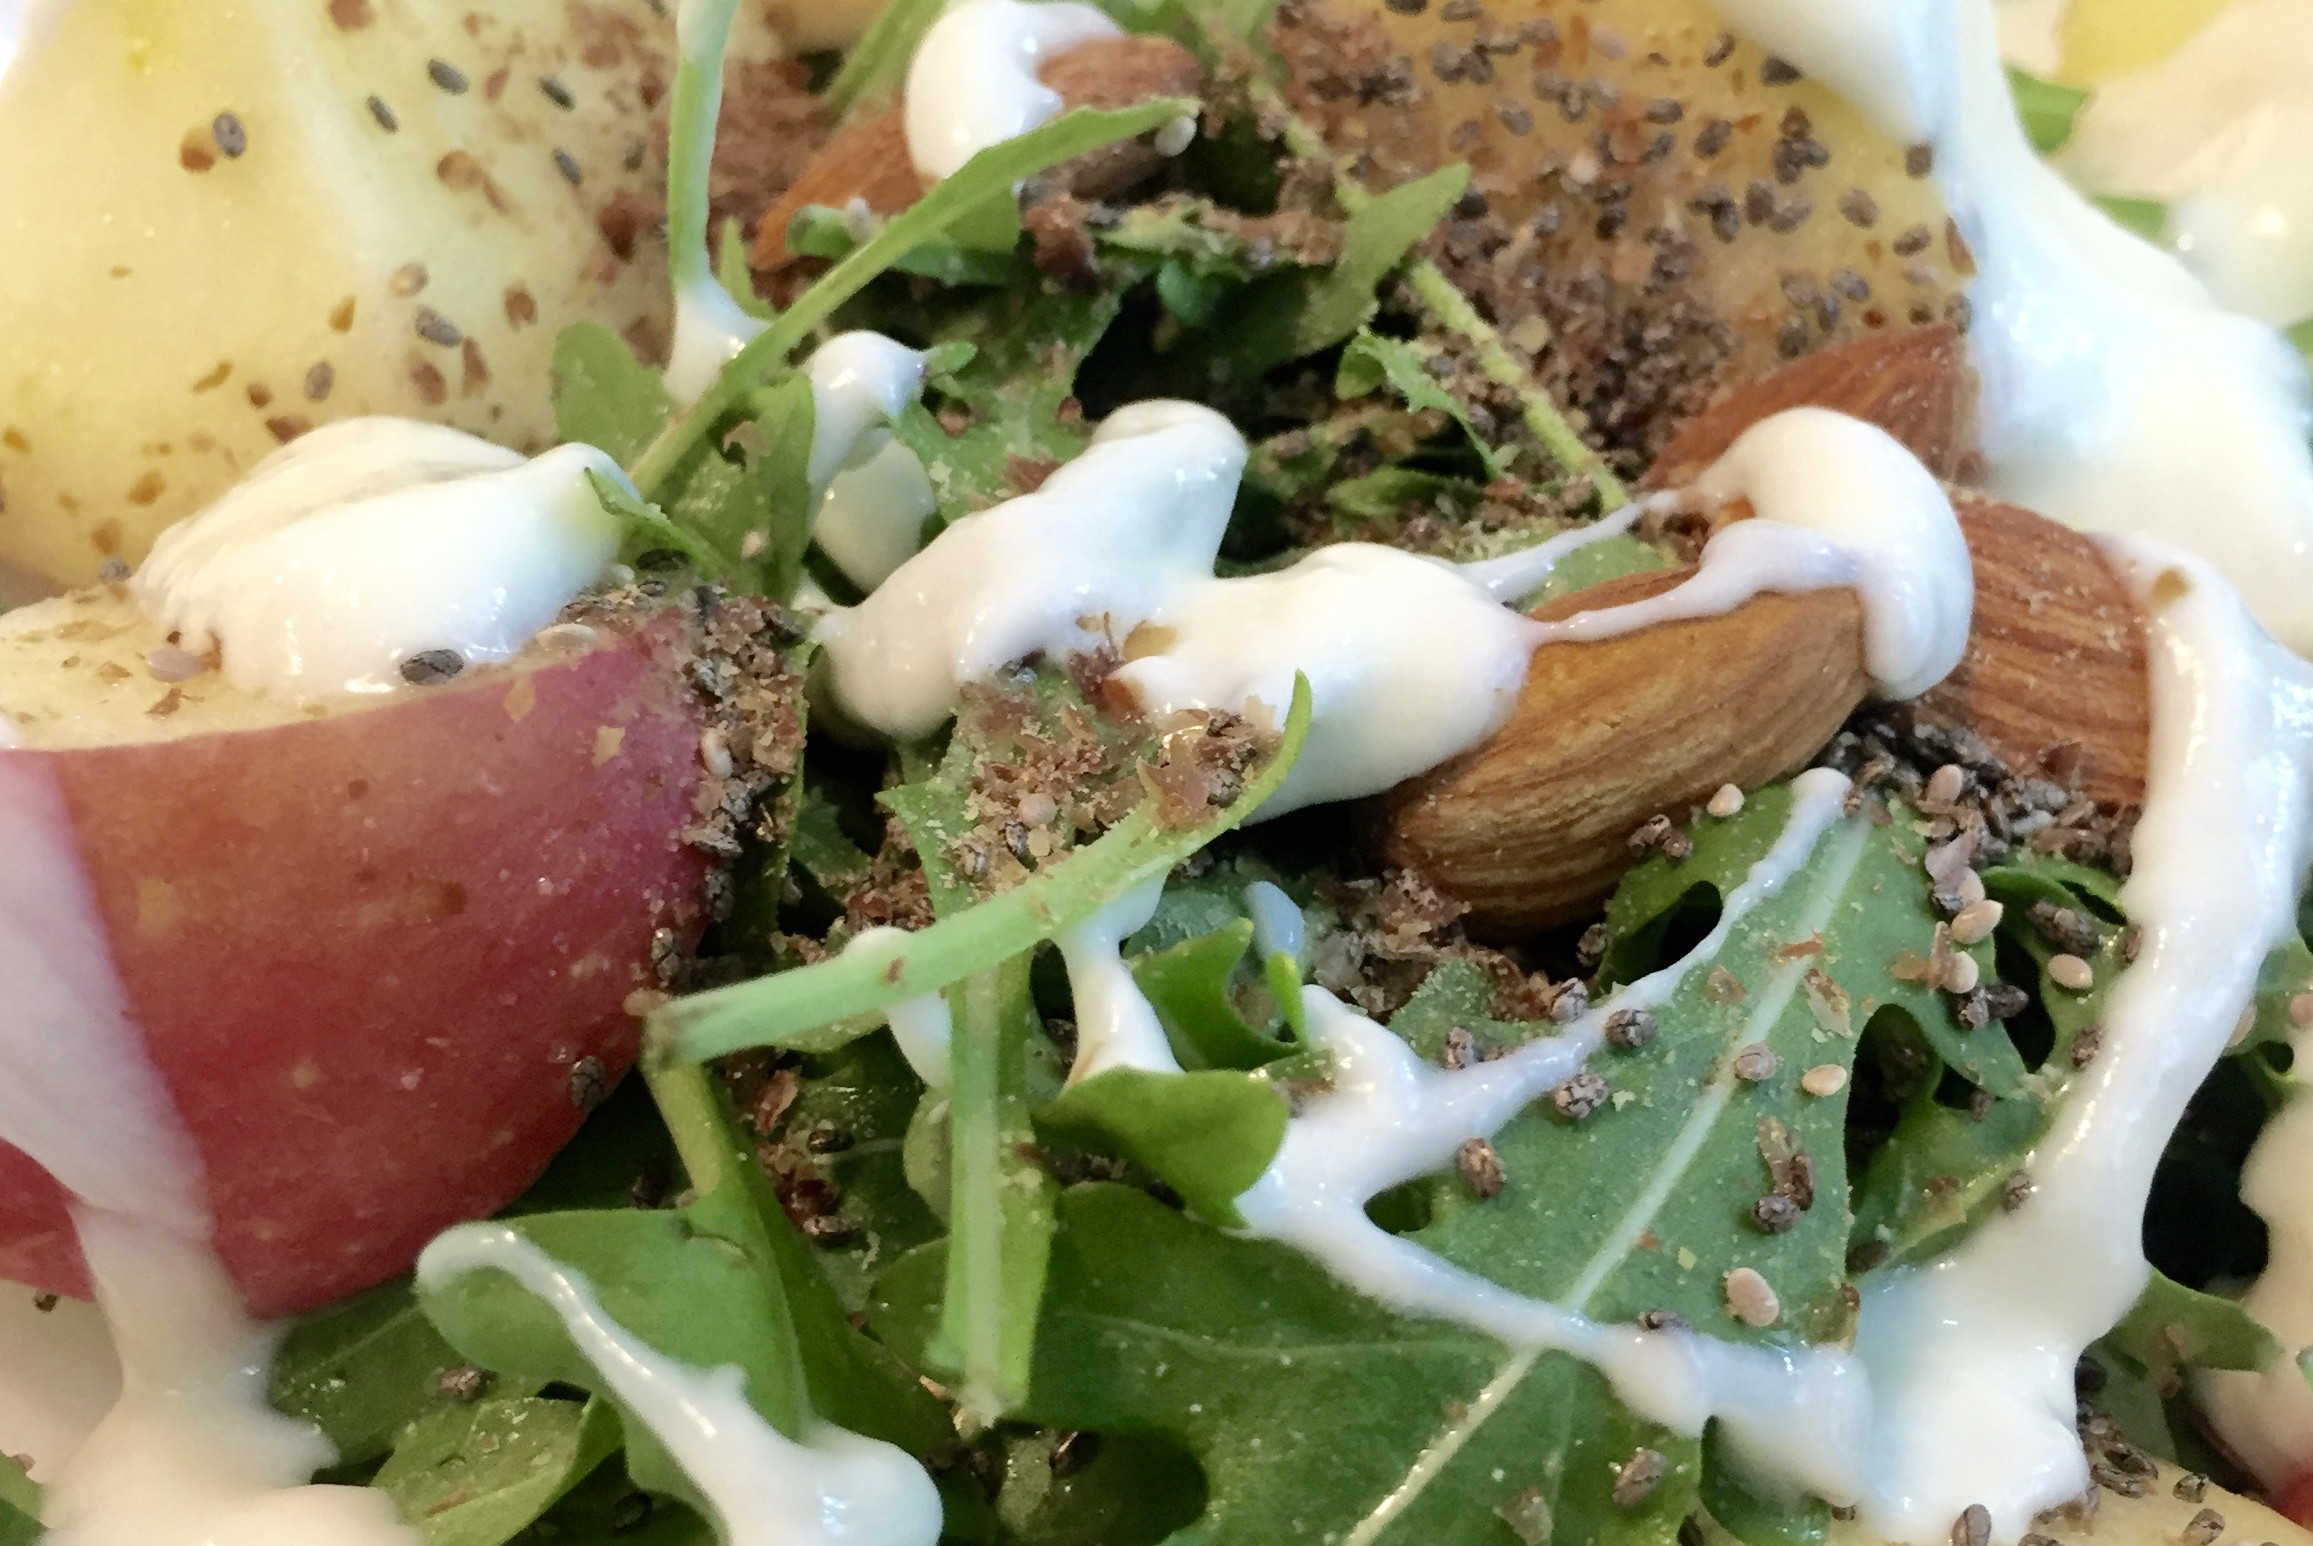 Healthy Breakfast Singapore - Apple and nuts salad